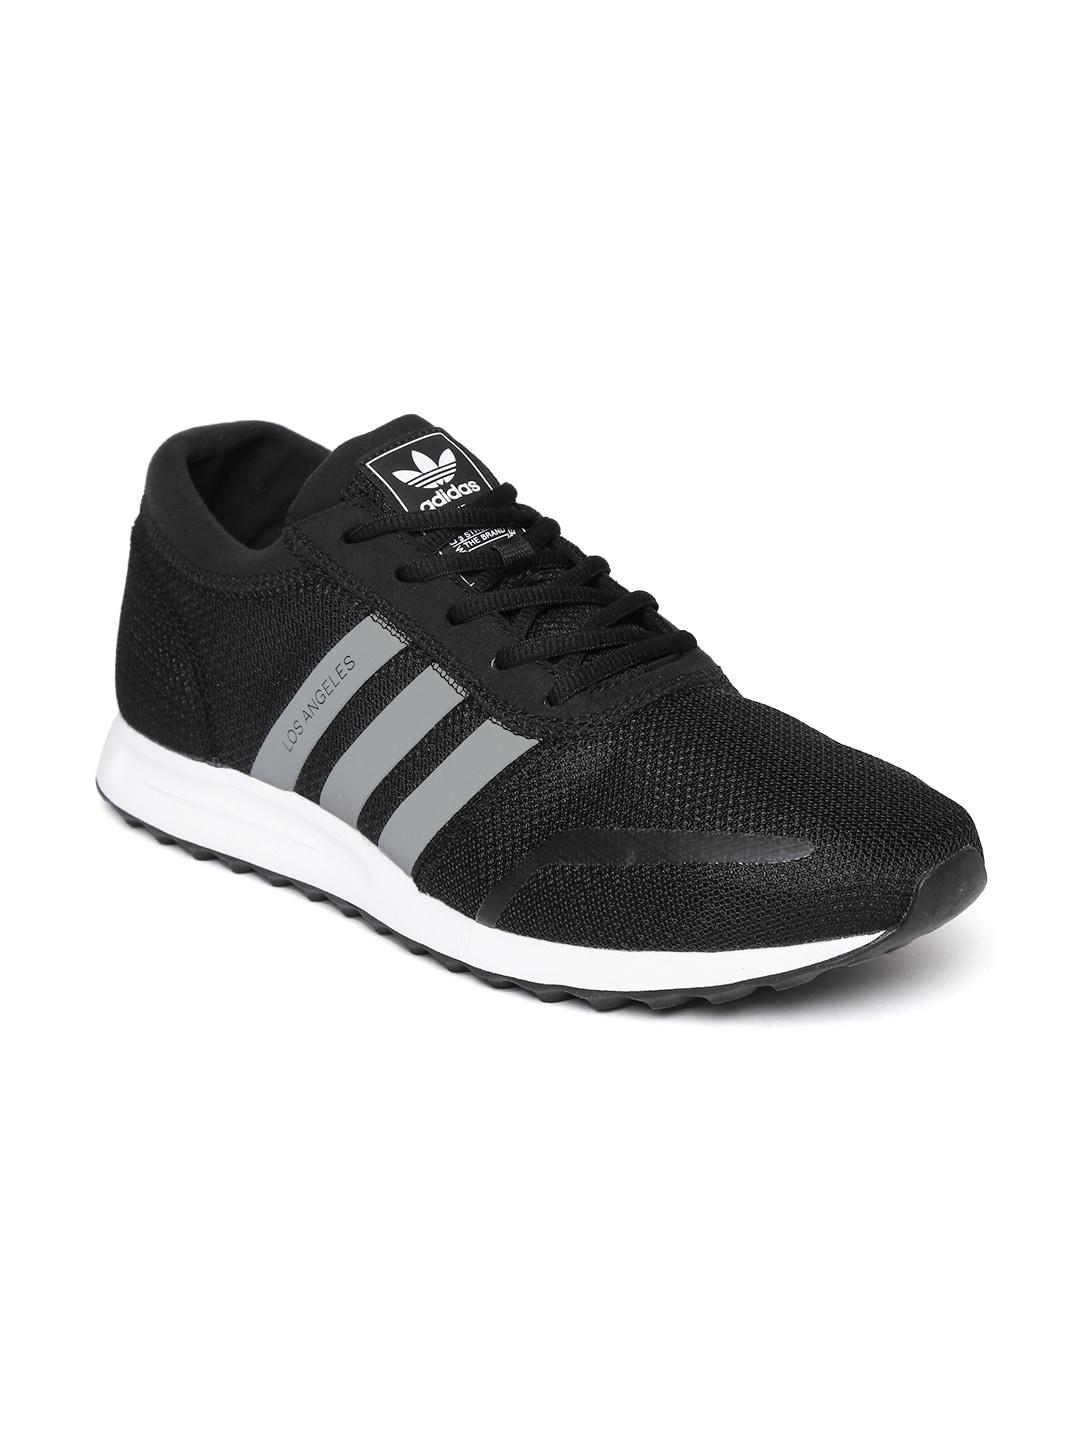 88a48afc57156 adidas - Exclusive adidas Online Store in India at Myntra